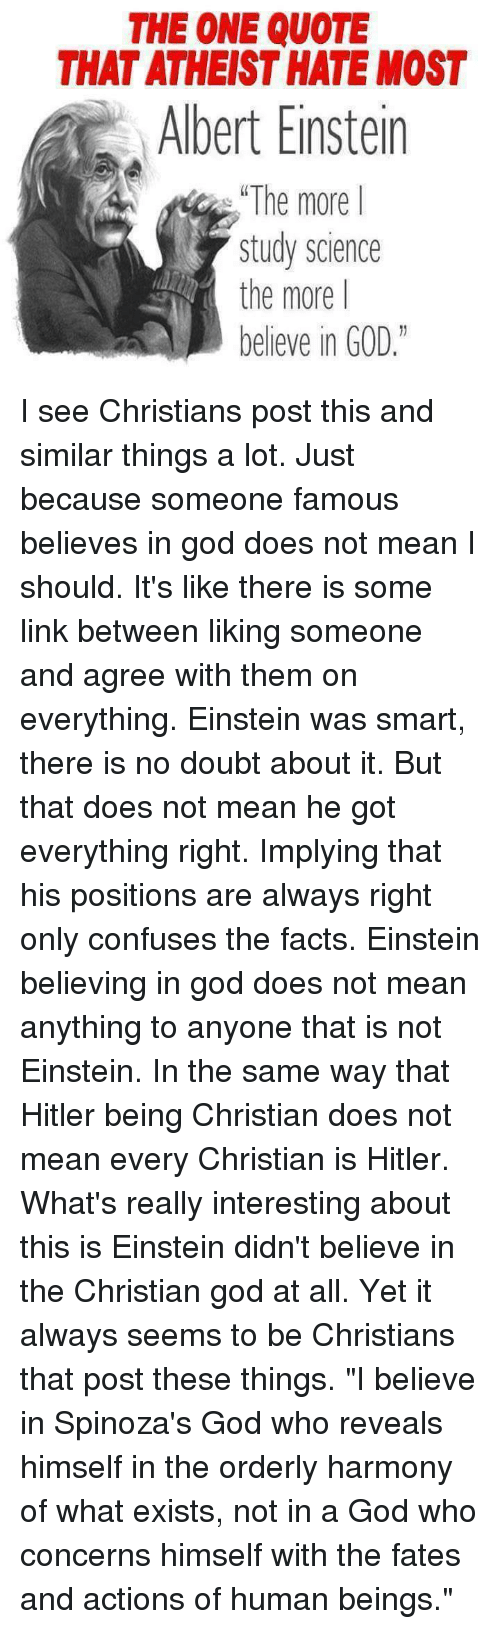 The One Quote That Atheist Hate Most A Albert Einstein The More I